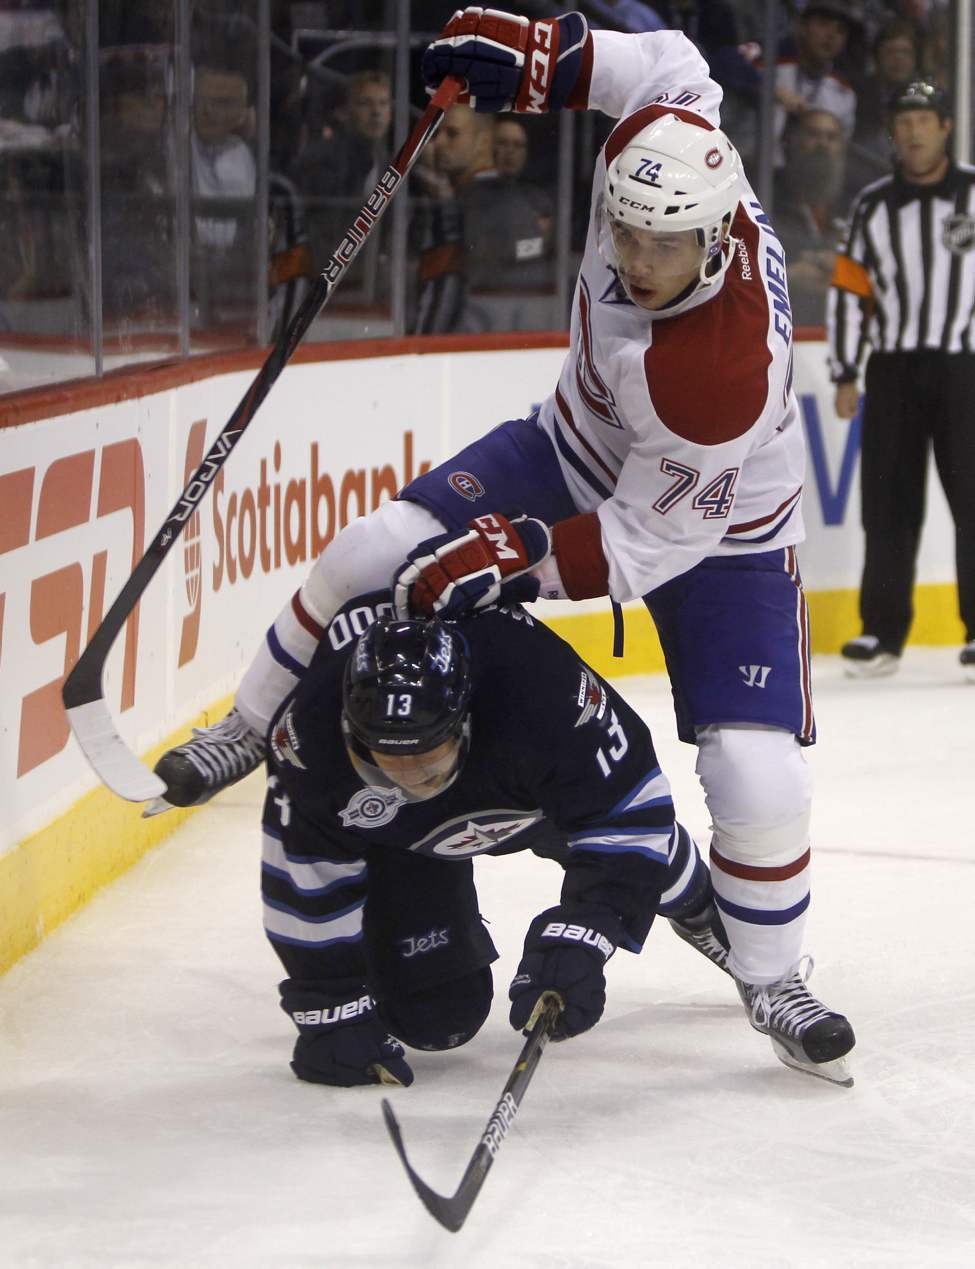 Canadien Alexei Emelin jumps over downed Jet Kyle Wellwood behind the Montreal net during second-period action. (Trevor Hagan / Winnipeg Free Press)